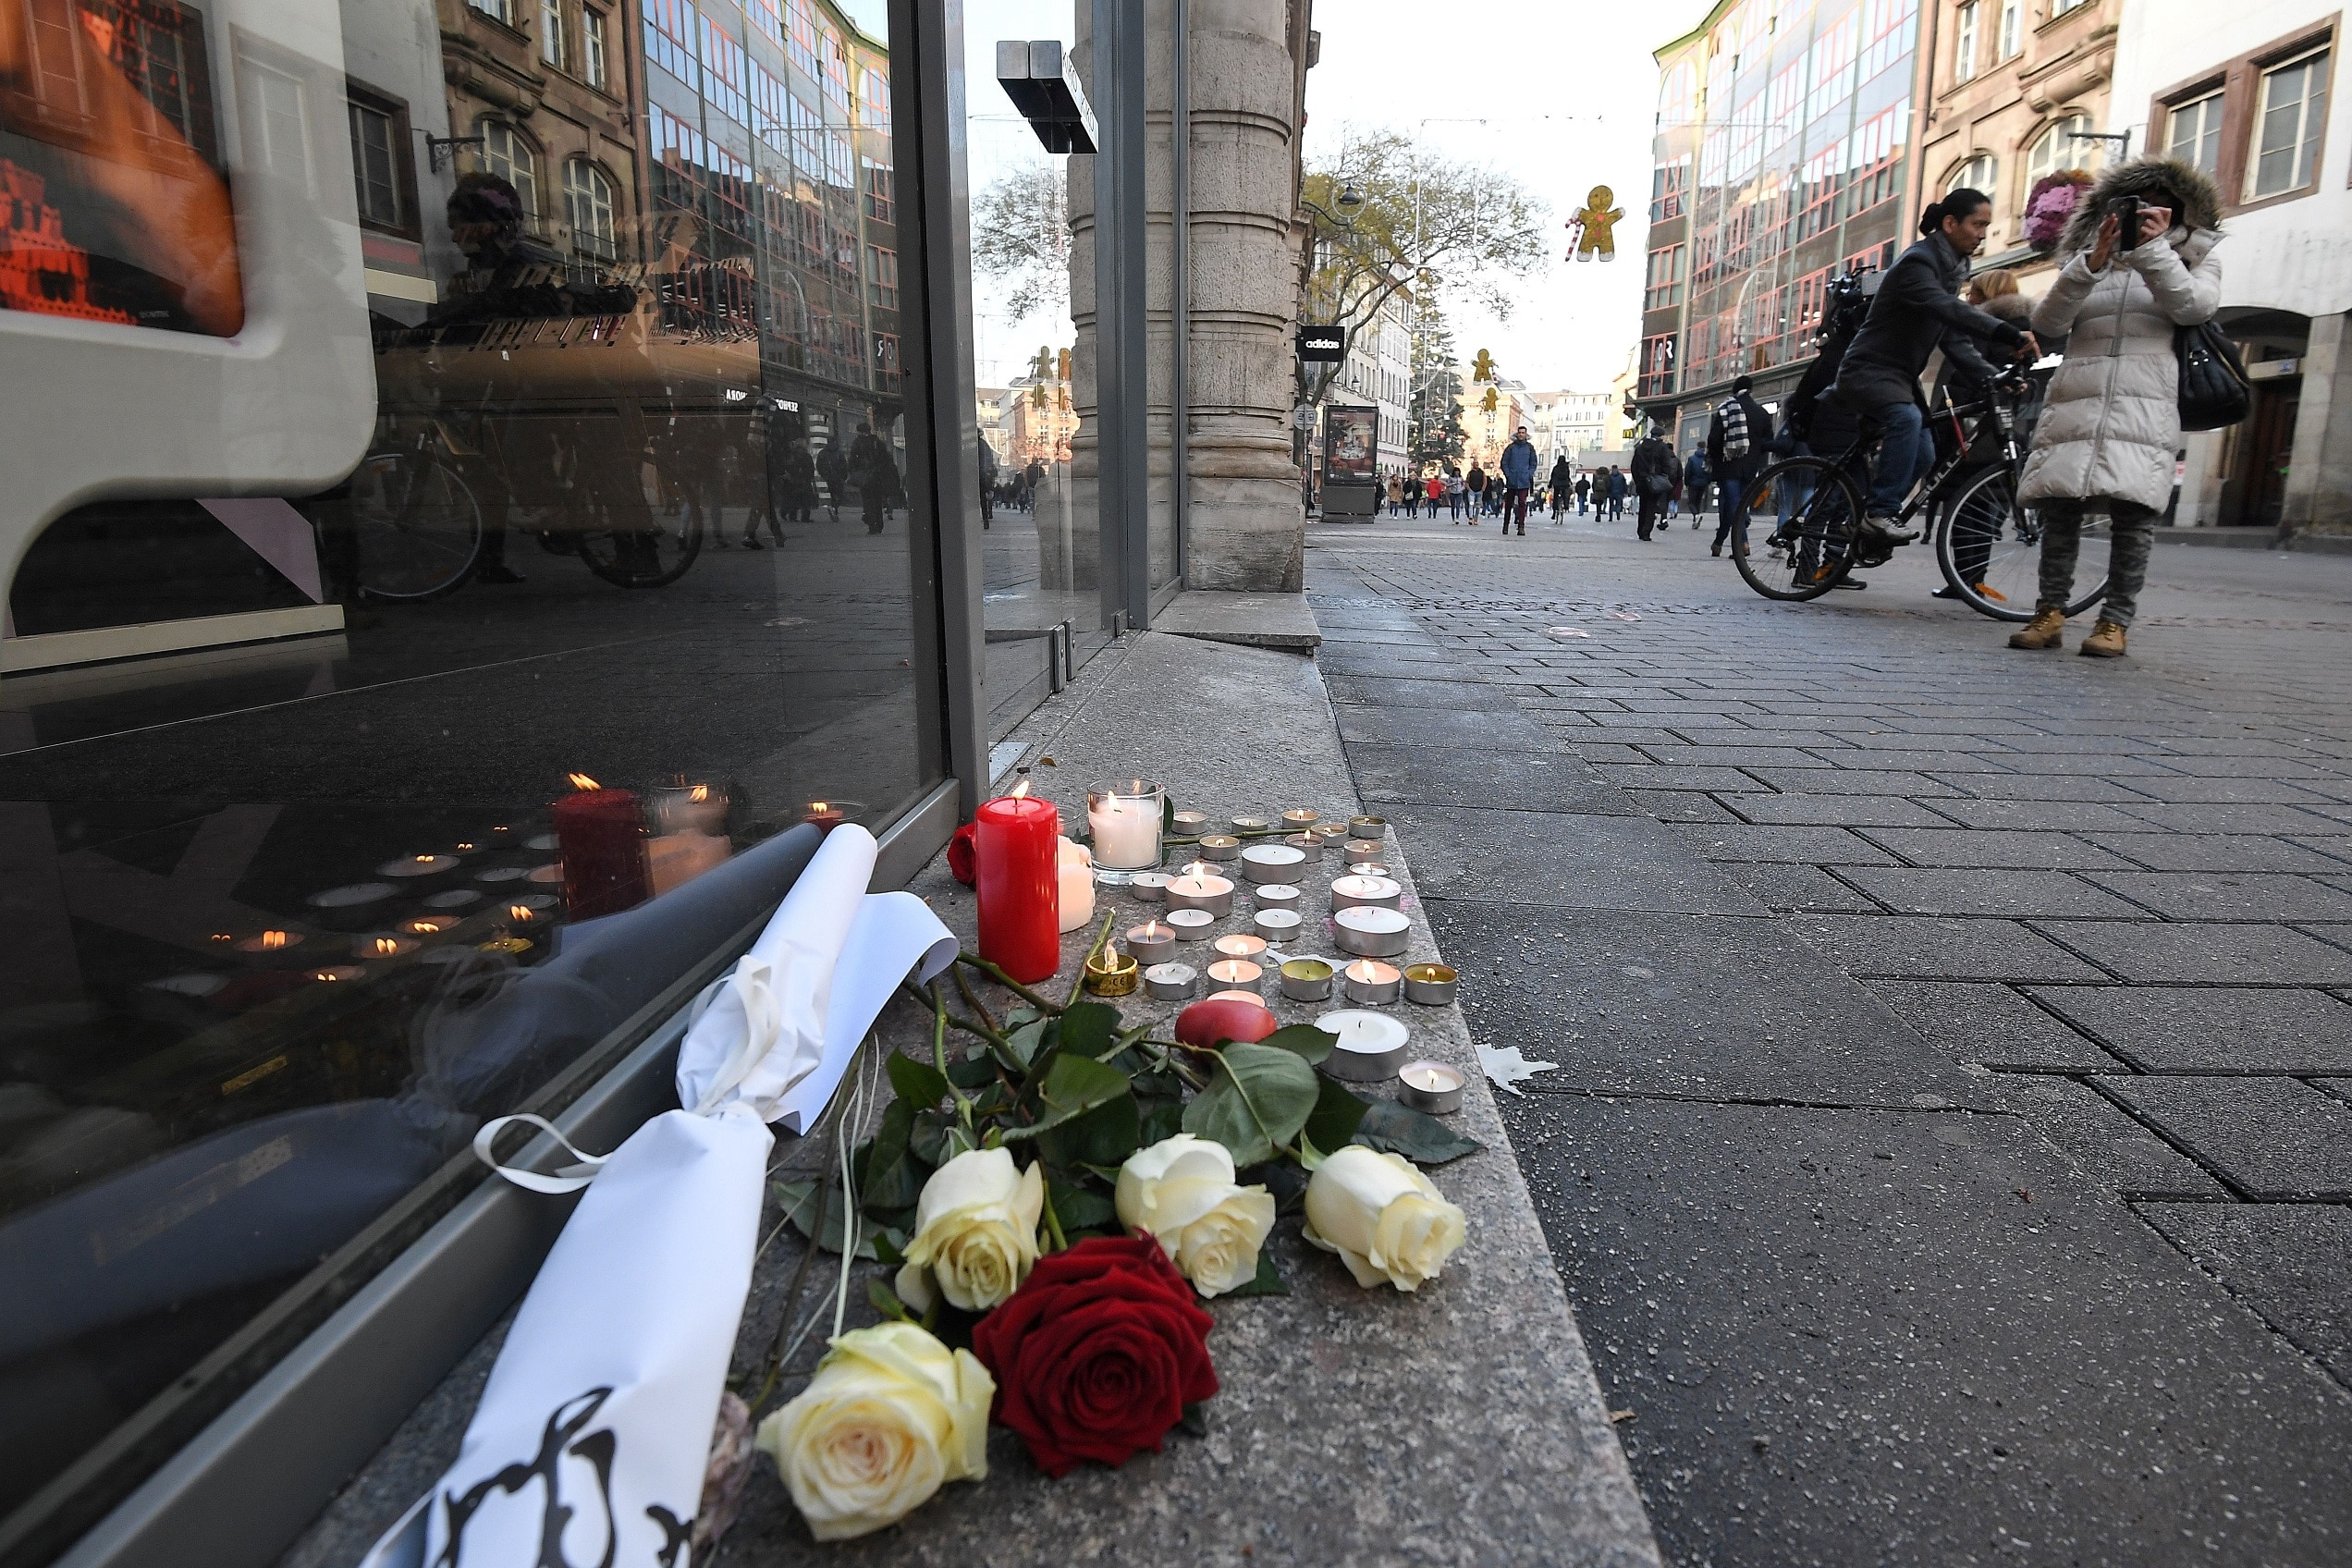 Flowers and candles are seen on the pavement the day after a deadly shooting in central Strasbourg.